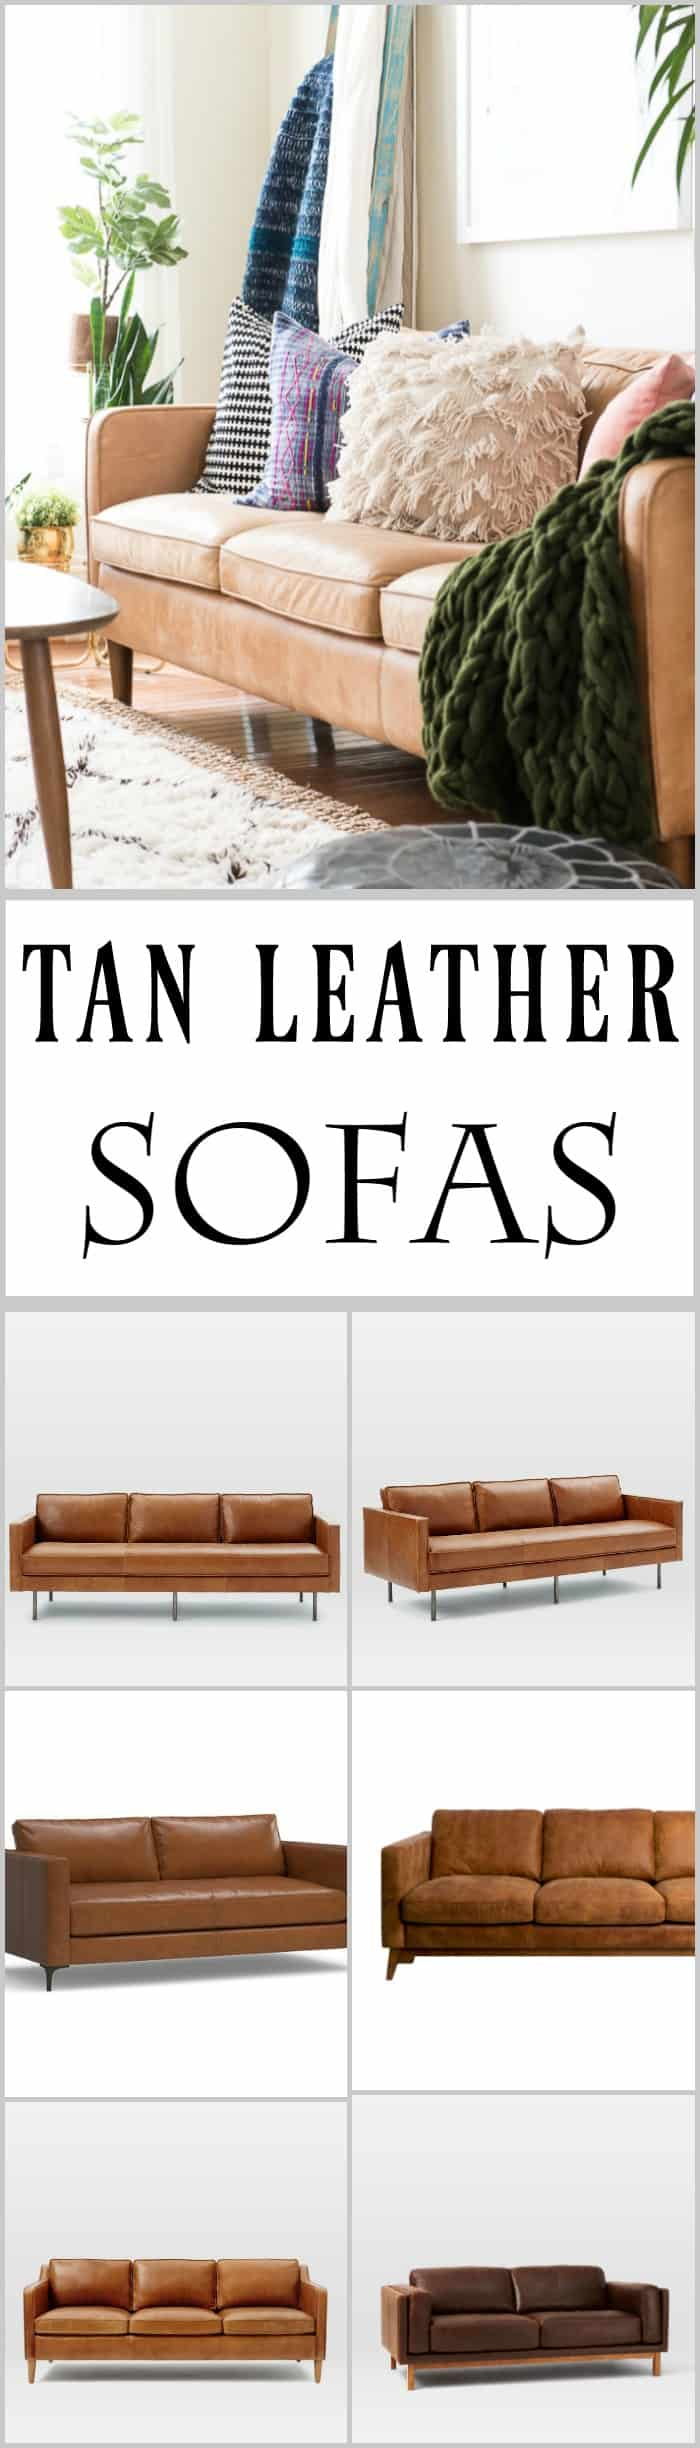 Tan leather sofas are so much in style these days.My Hamilton leather sofa is great, and in this post, you can check out some beautiful tan leather sofas.